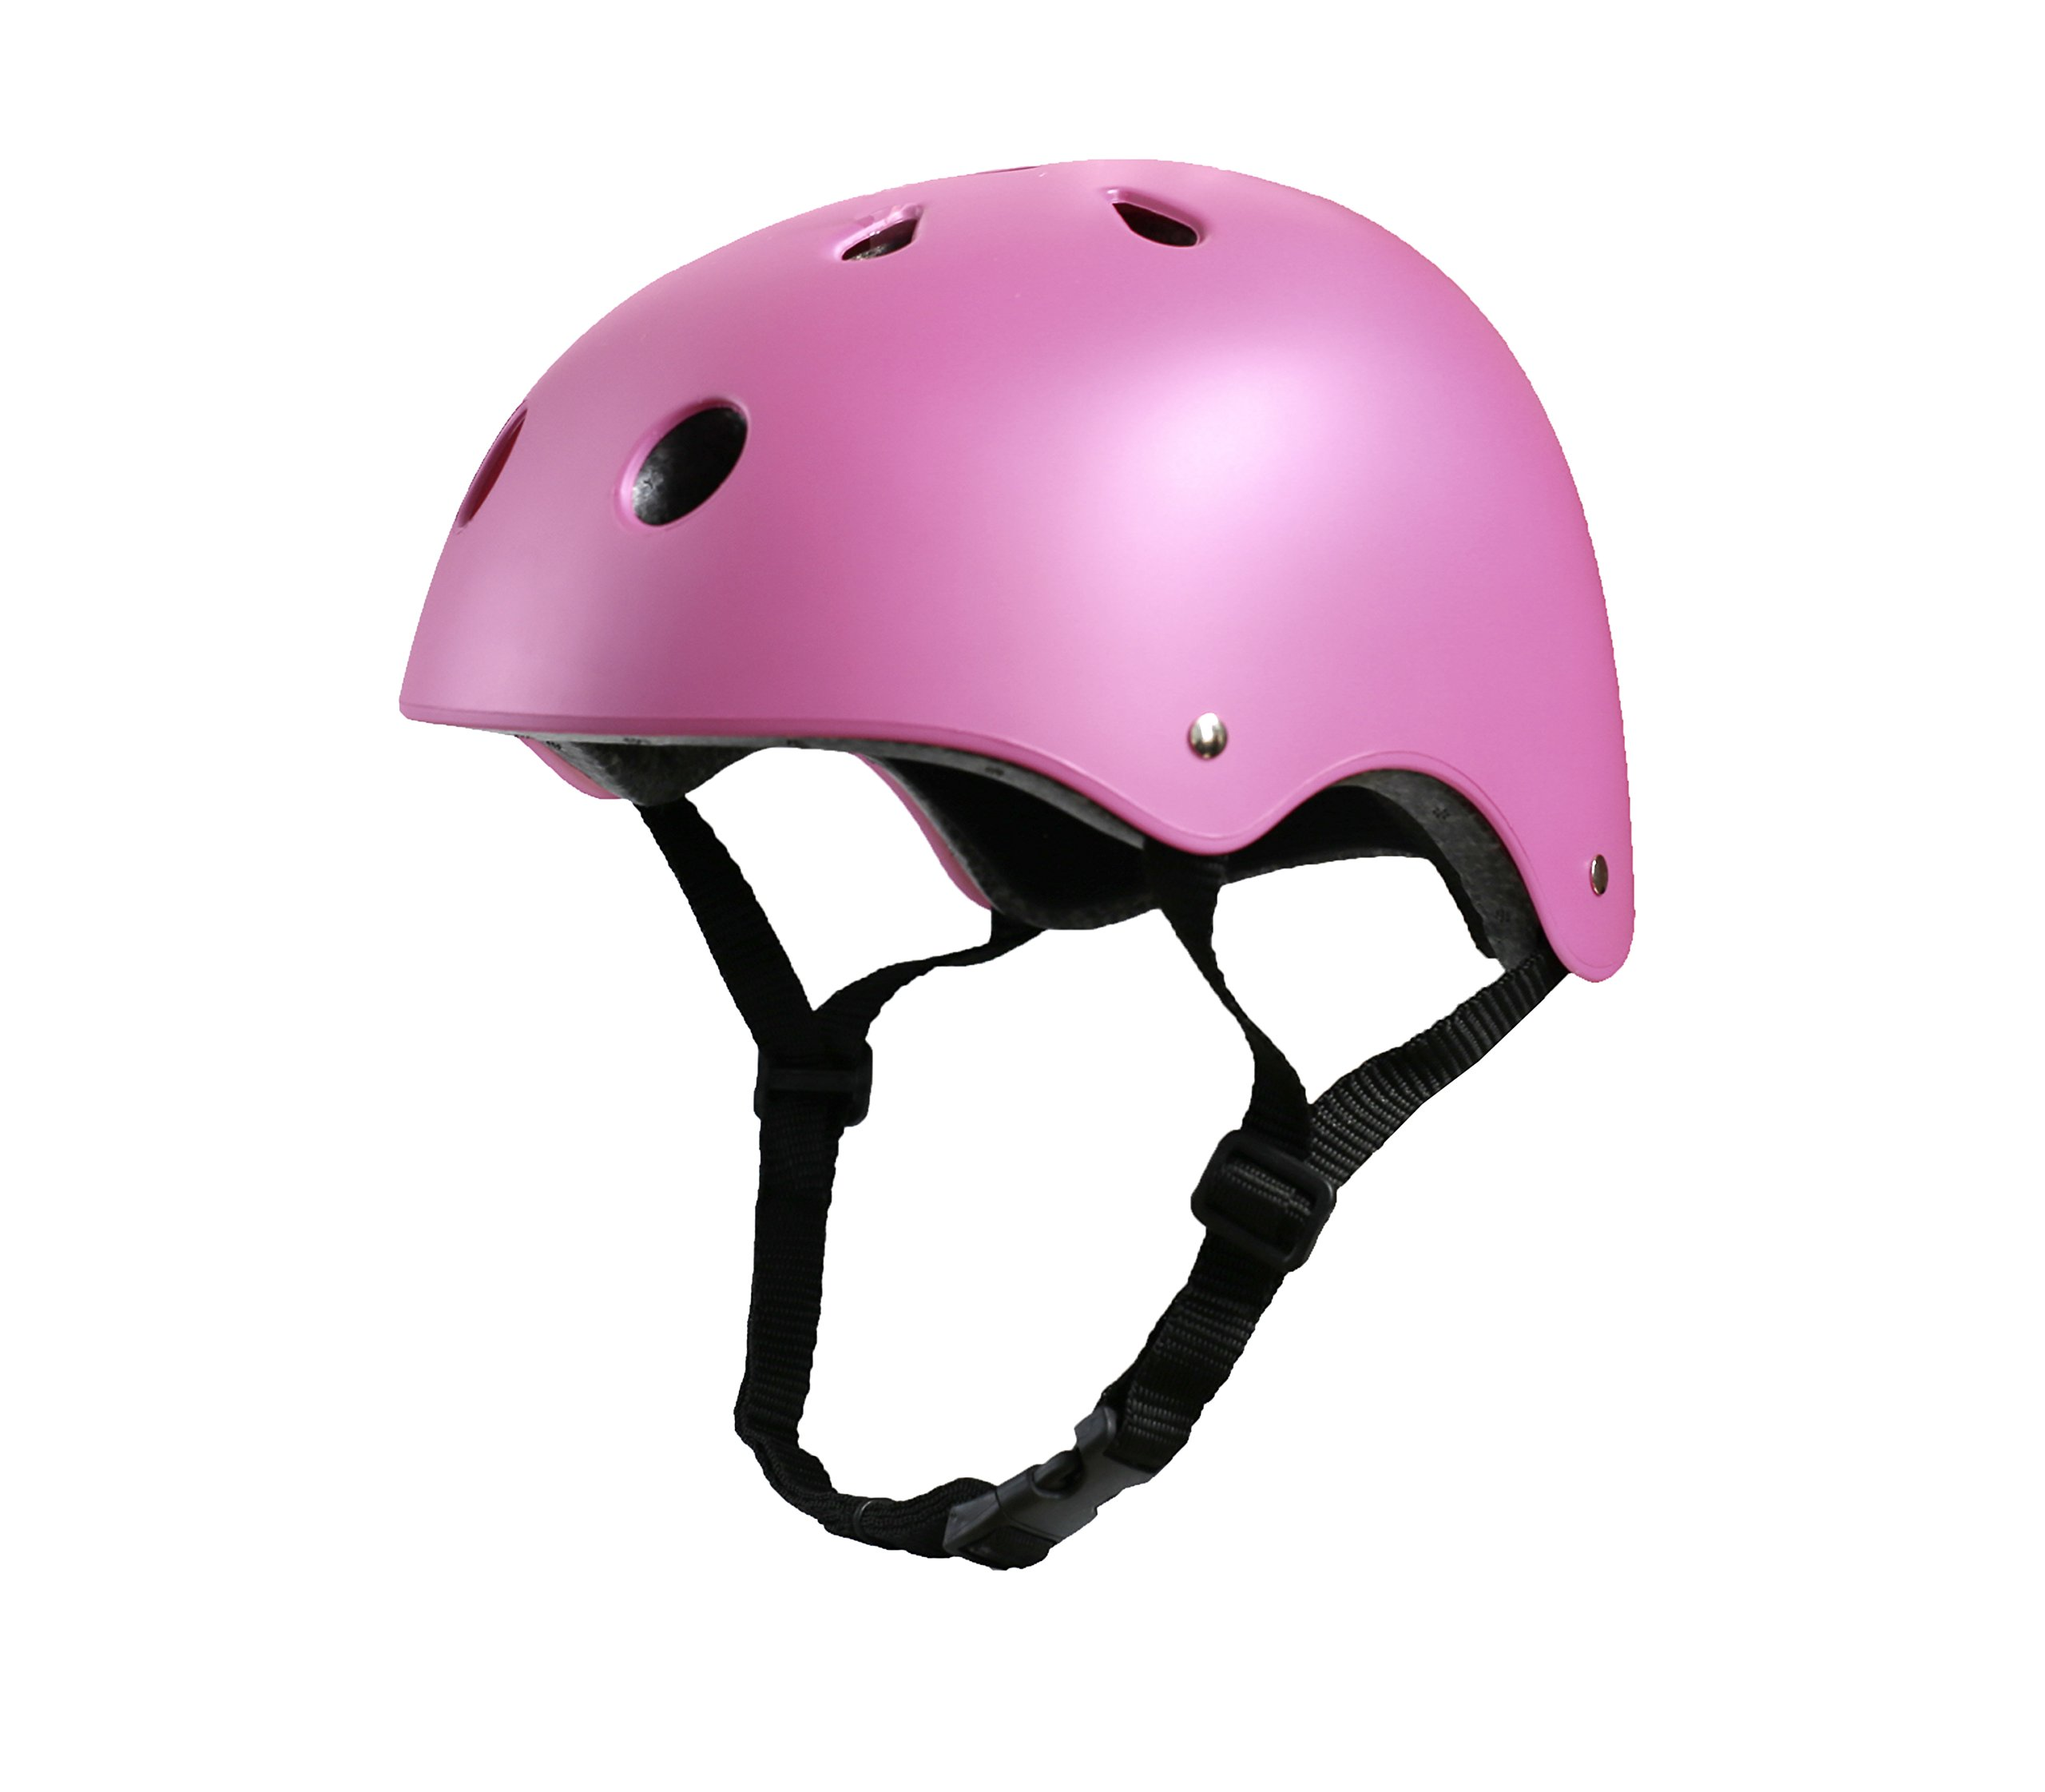 Tourdarson Adult Skateboard Helmet Specialized Certified Protection for Multi-Sports Cycling Skateboarding Scooter Roller Skate Inline Skating Rollerblading Longboard (Pink, Medium)